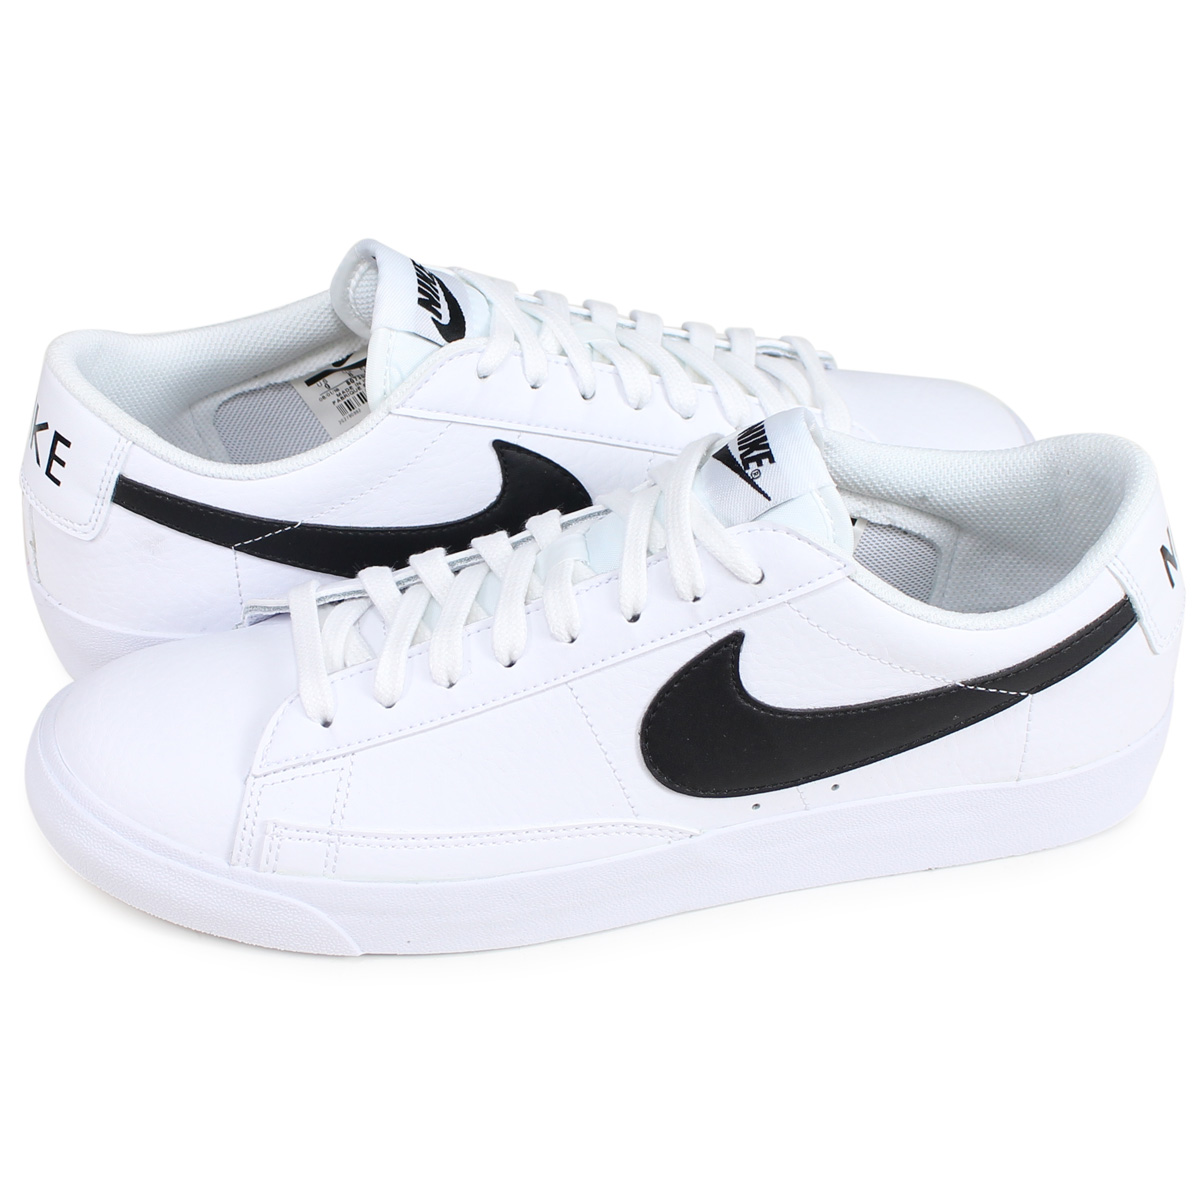 competitive price e236e 66f37 Nike NIKE blazer low sneakers men BLAZER LOW LEATHER white BQ7306-001 [192]